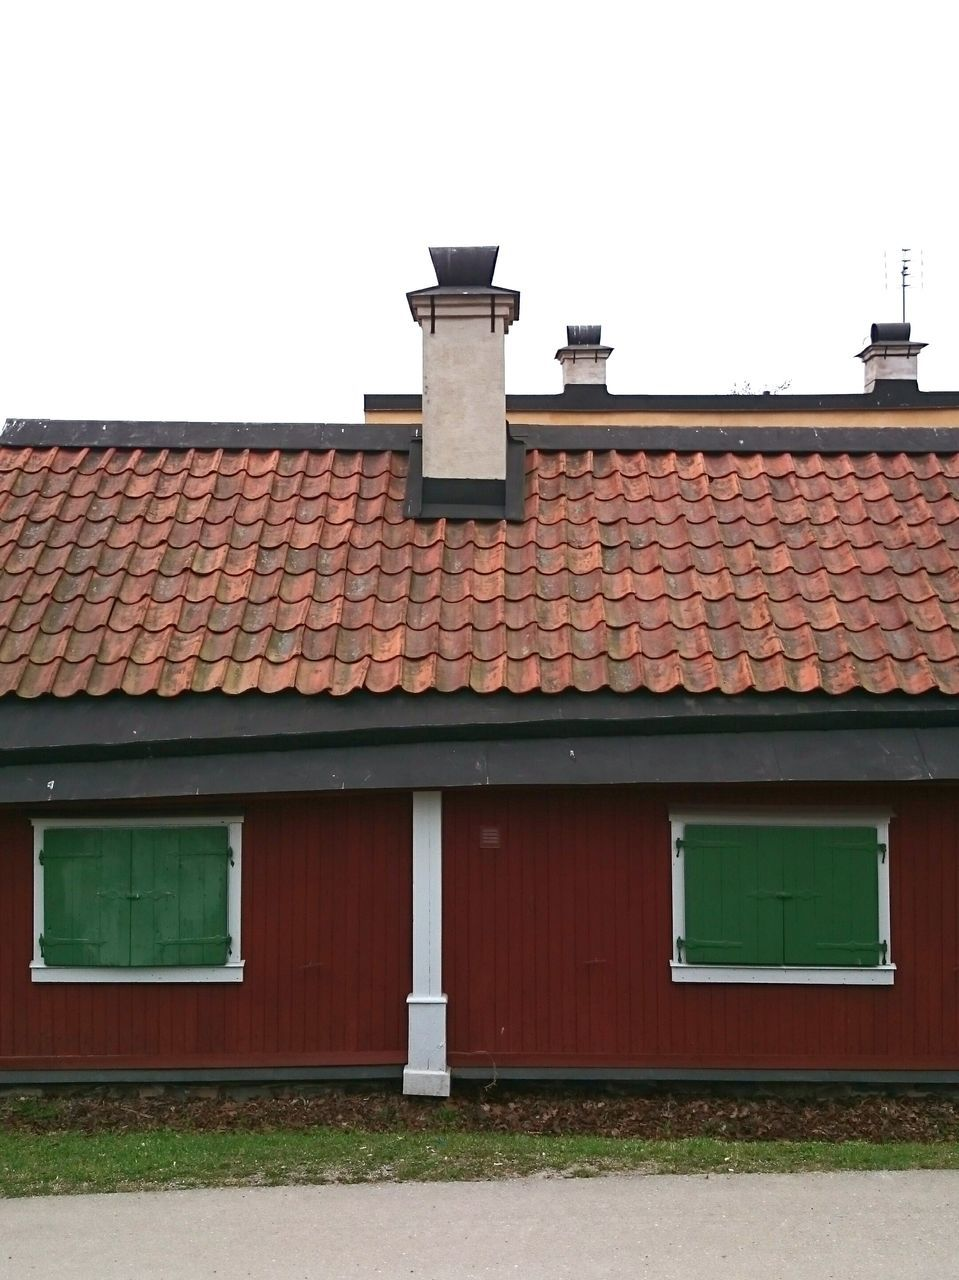 building exterior, architecture, built structure, house, roof, clear sky, outdoors, no people, day, red, tiled roof, sky